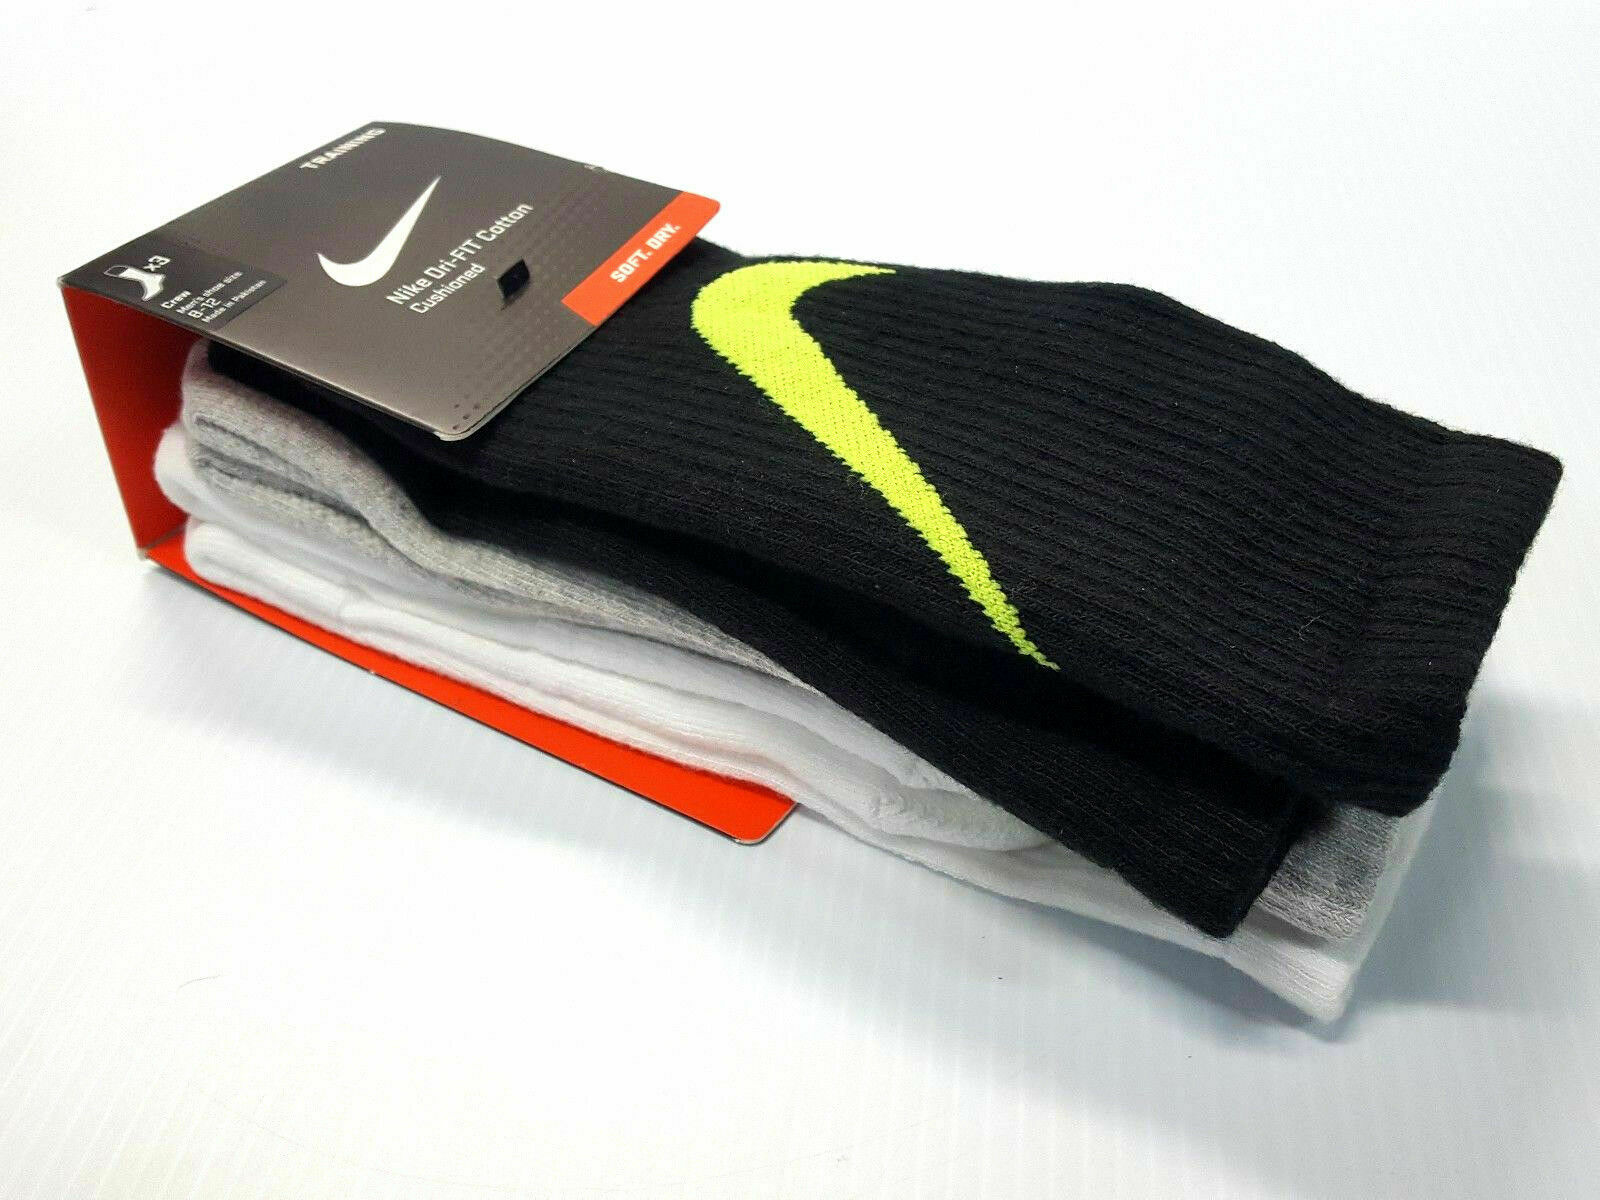 bb606cee0525c Nike Swoosh HBR Crew Socks Sx4950 3 Pair Was 8-12 Men